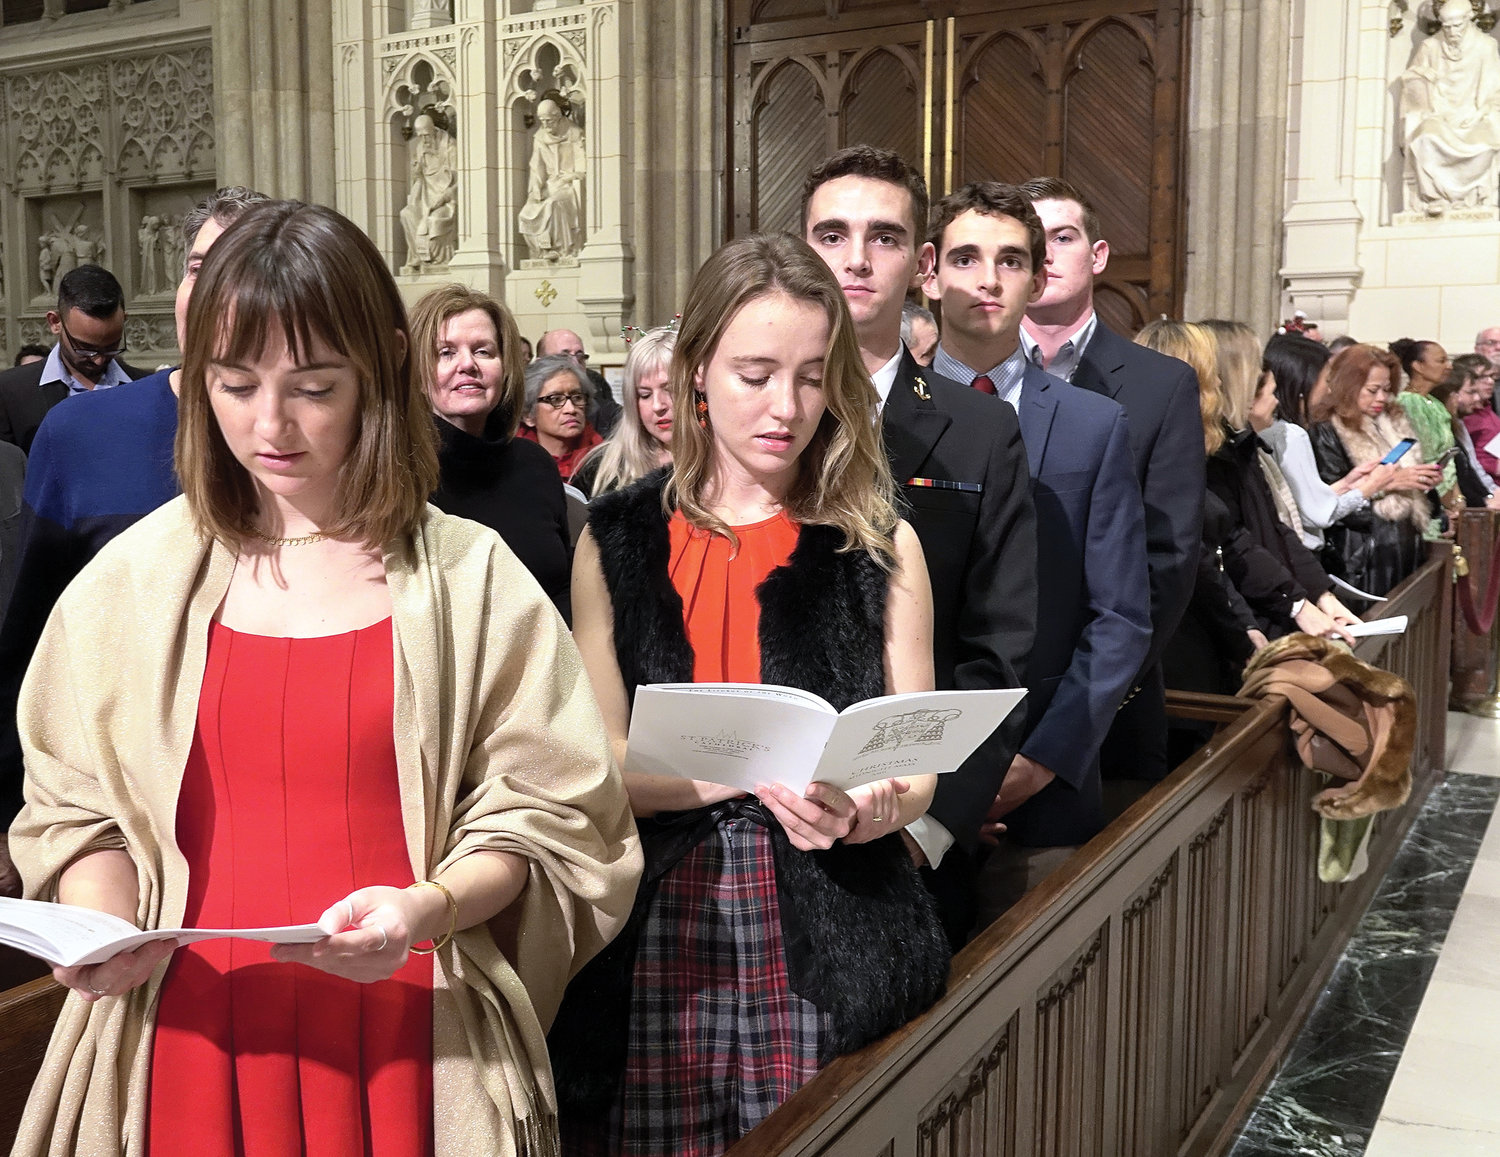 The faithful, assembled in the pews, participate in the liturgy commemorating the Nativity of the Lord.